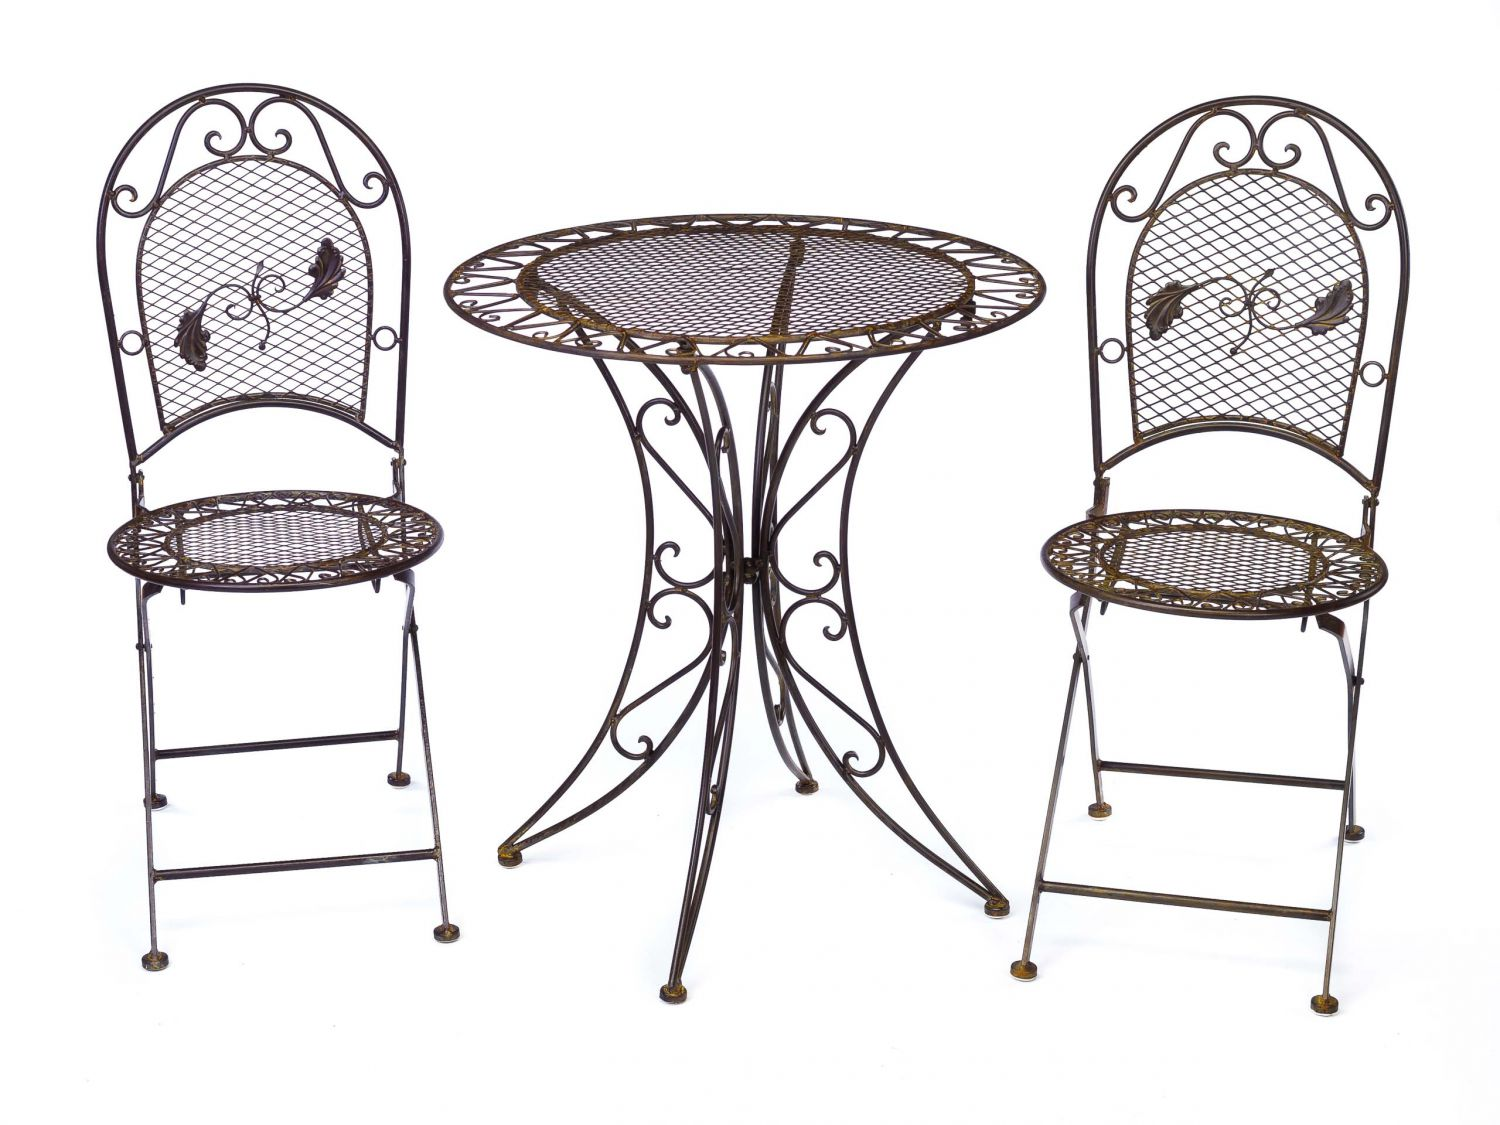 Wrought Iron Table And Chairs Antique Style Garden Furniture Set Table And 2 Chairs